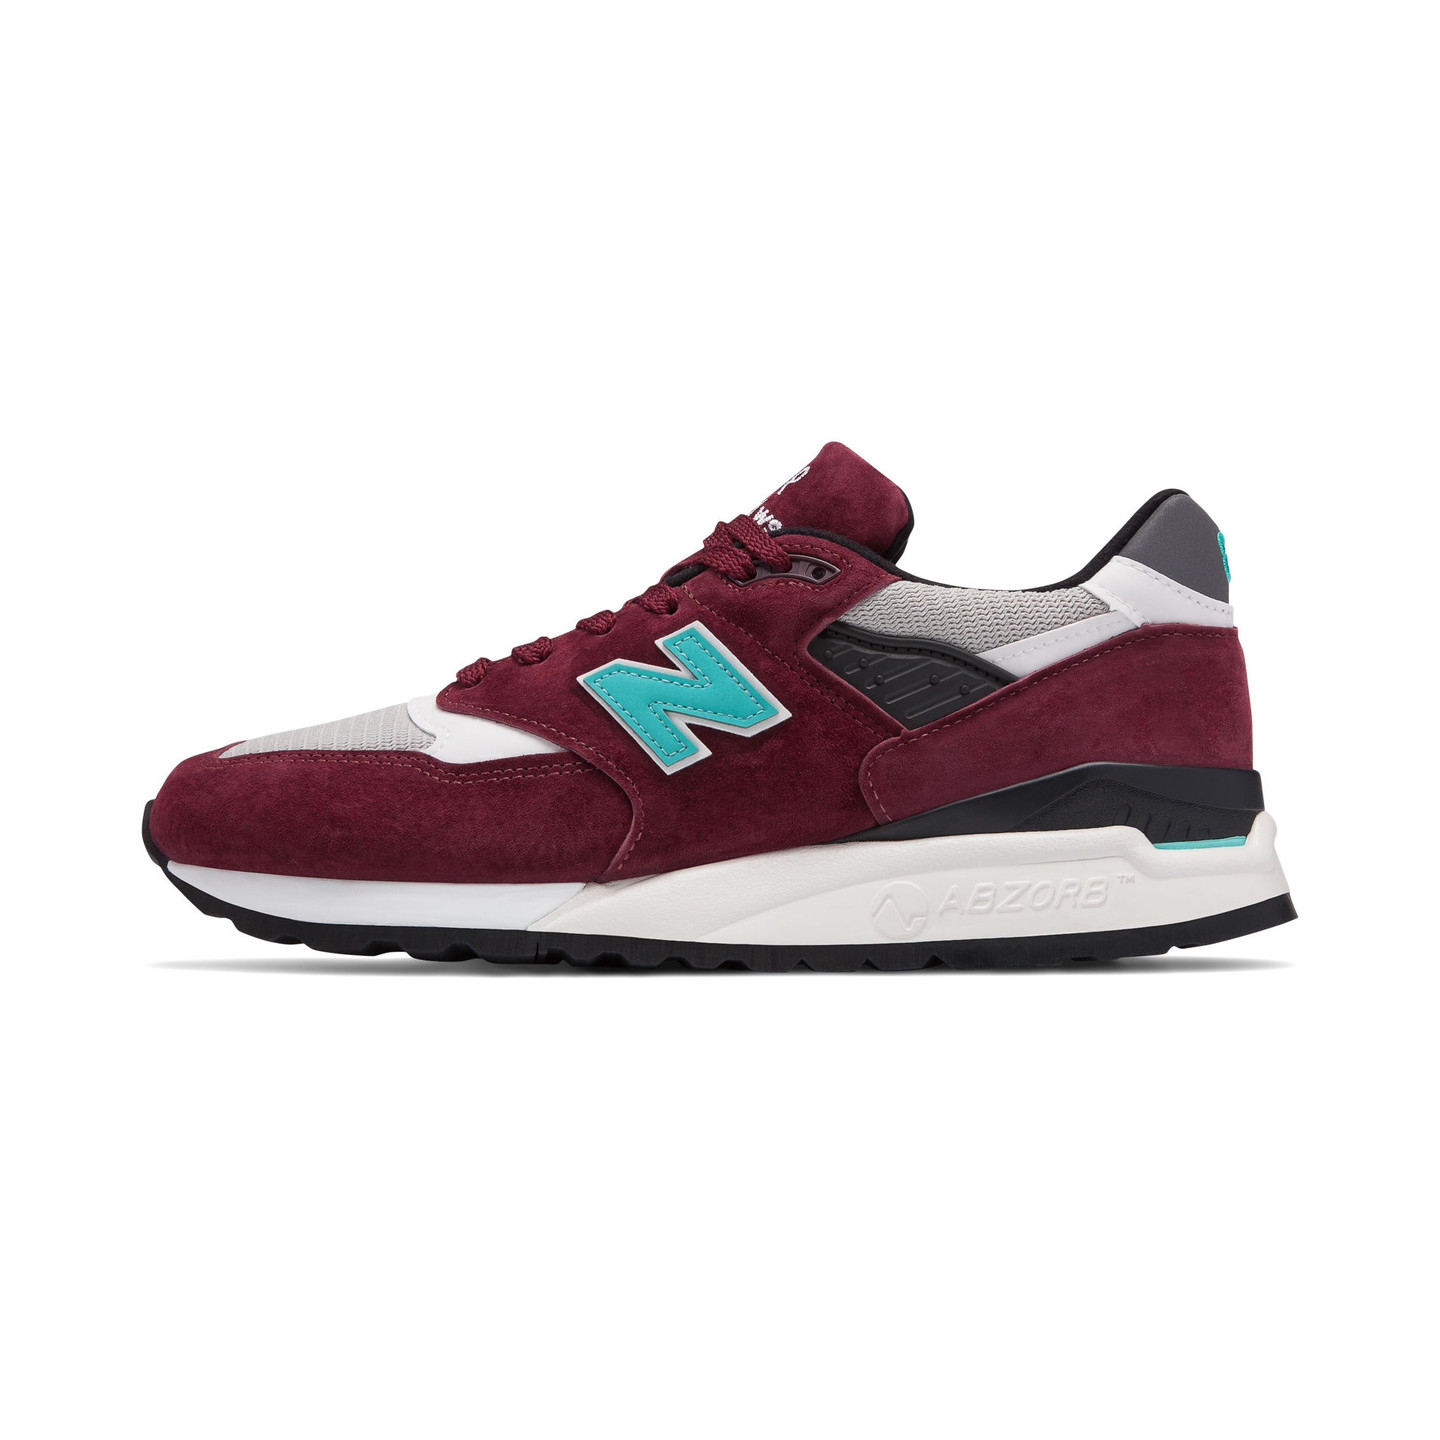 New Balance M998 - Made in USA Burgundy / Aqua M998AWC